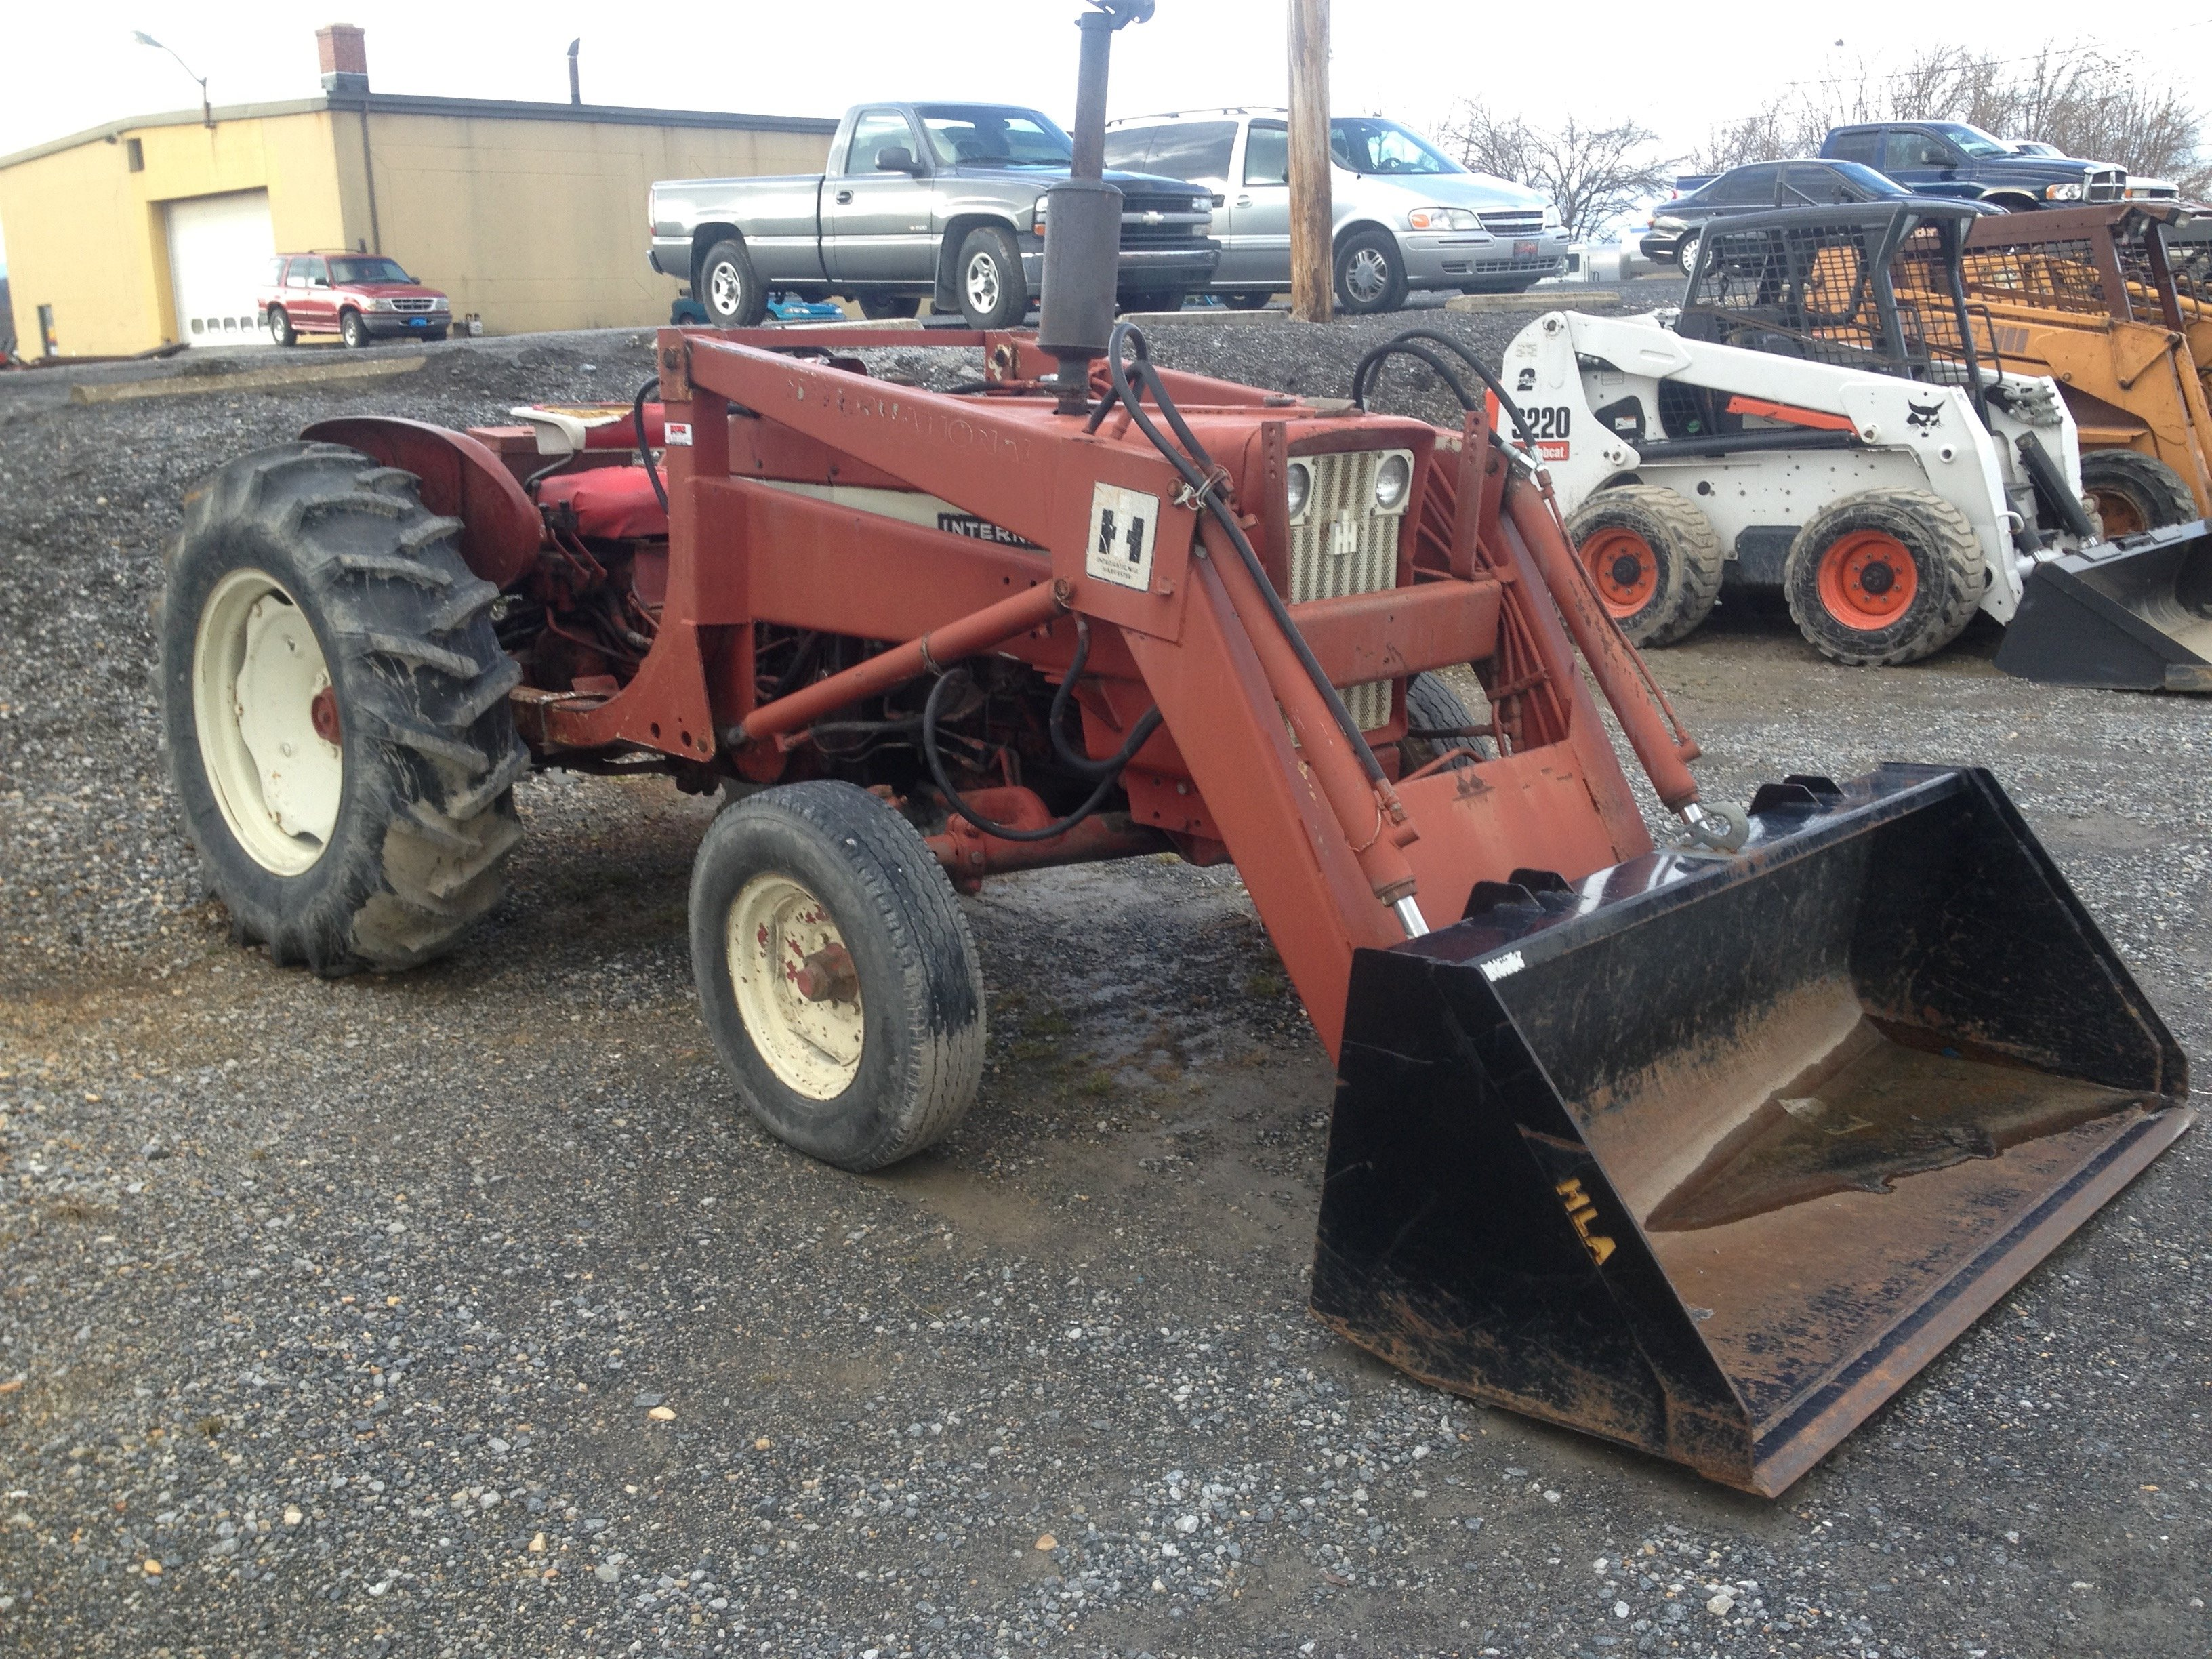 Here is a rare tractor, an International 606 - General IH